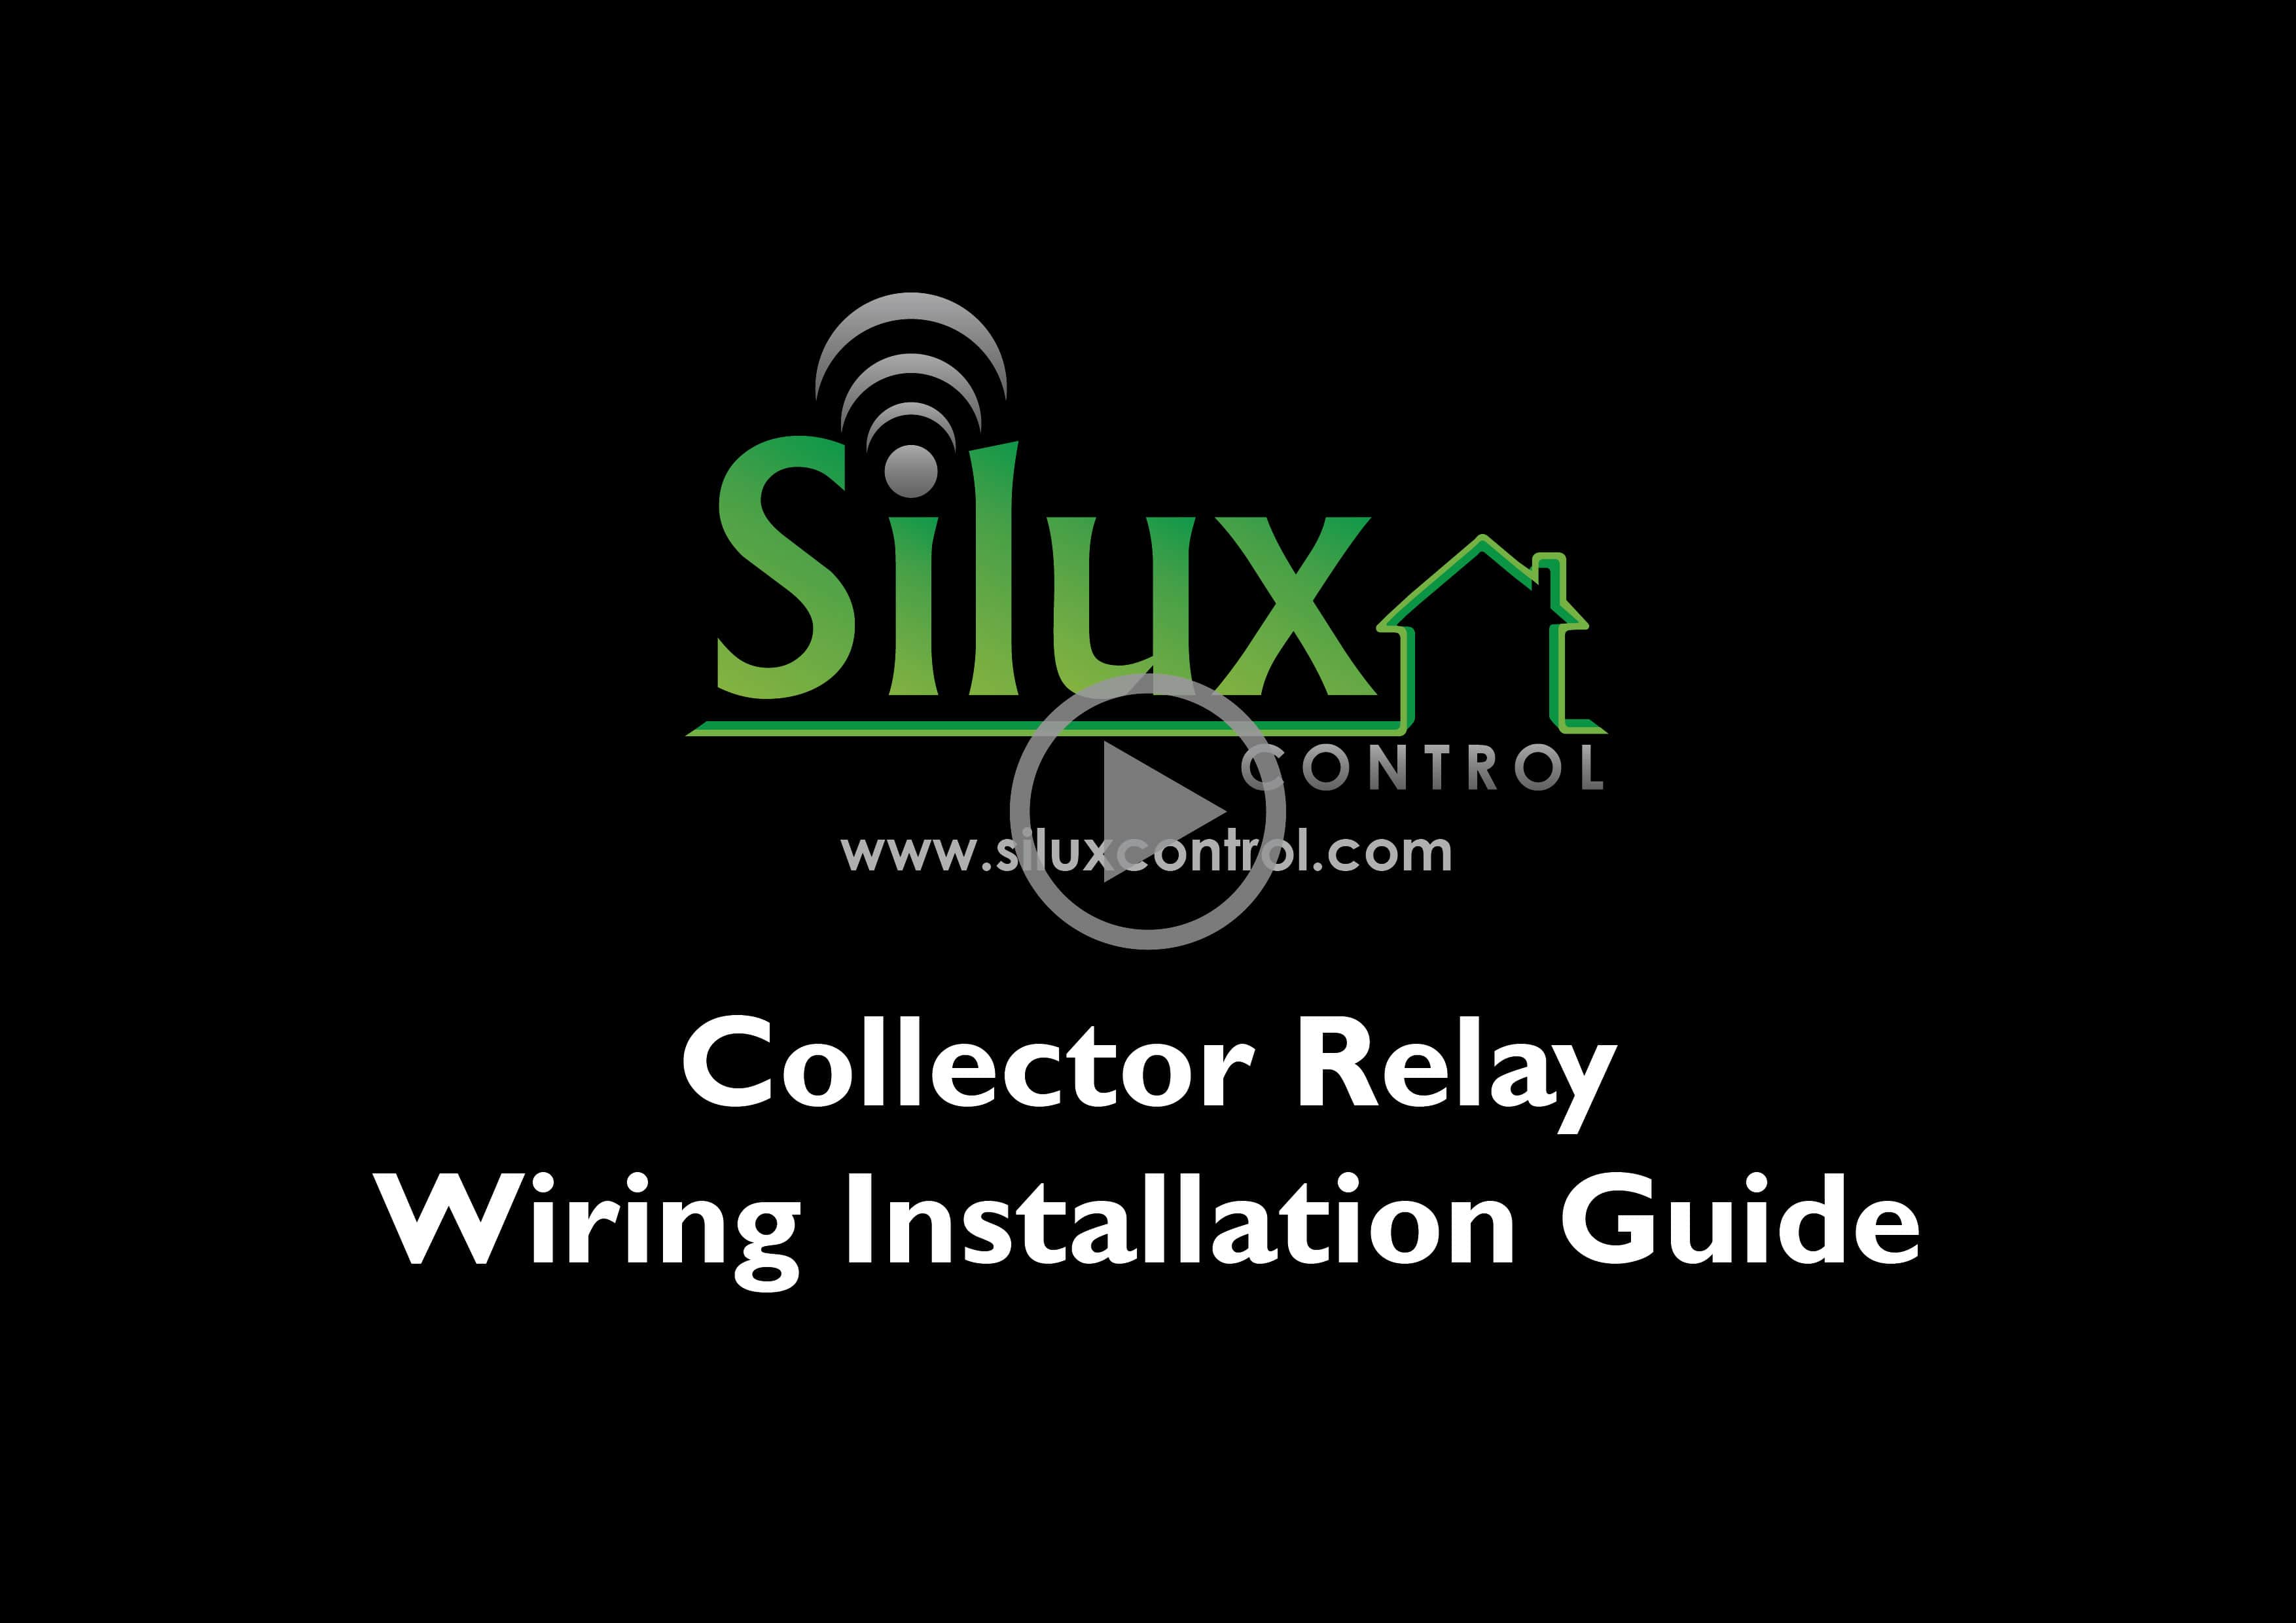 Silux control Collector Instructions